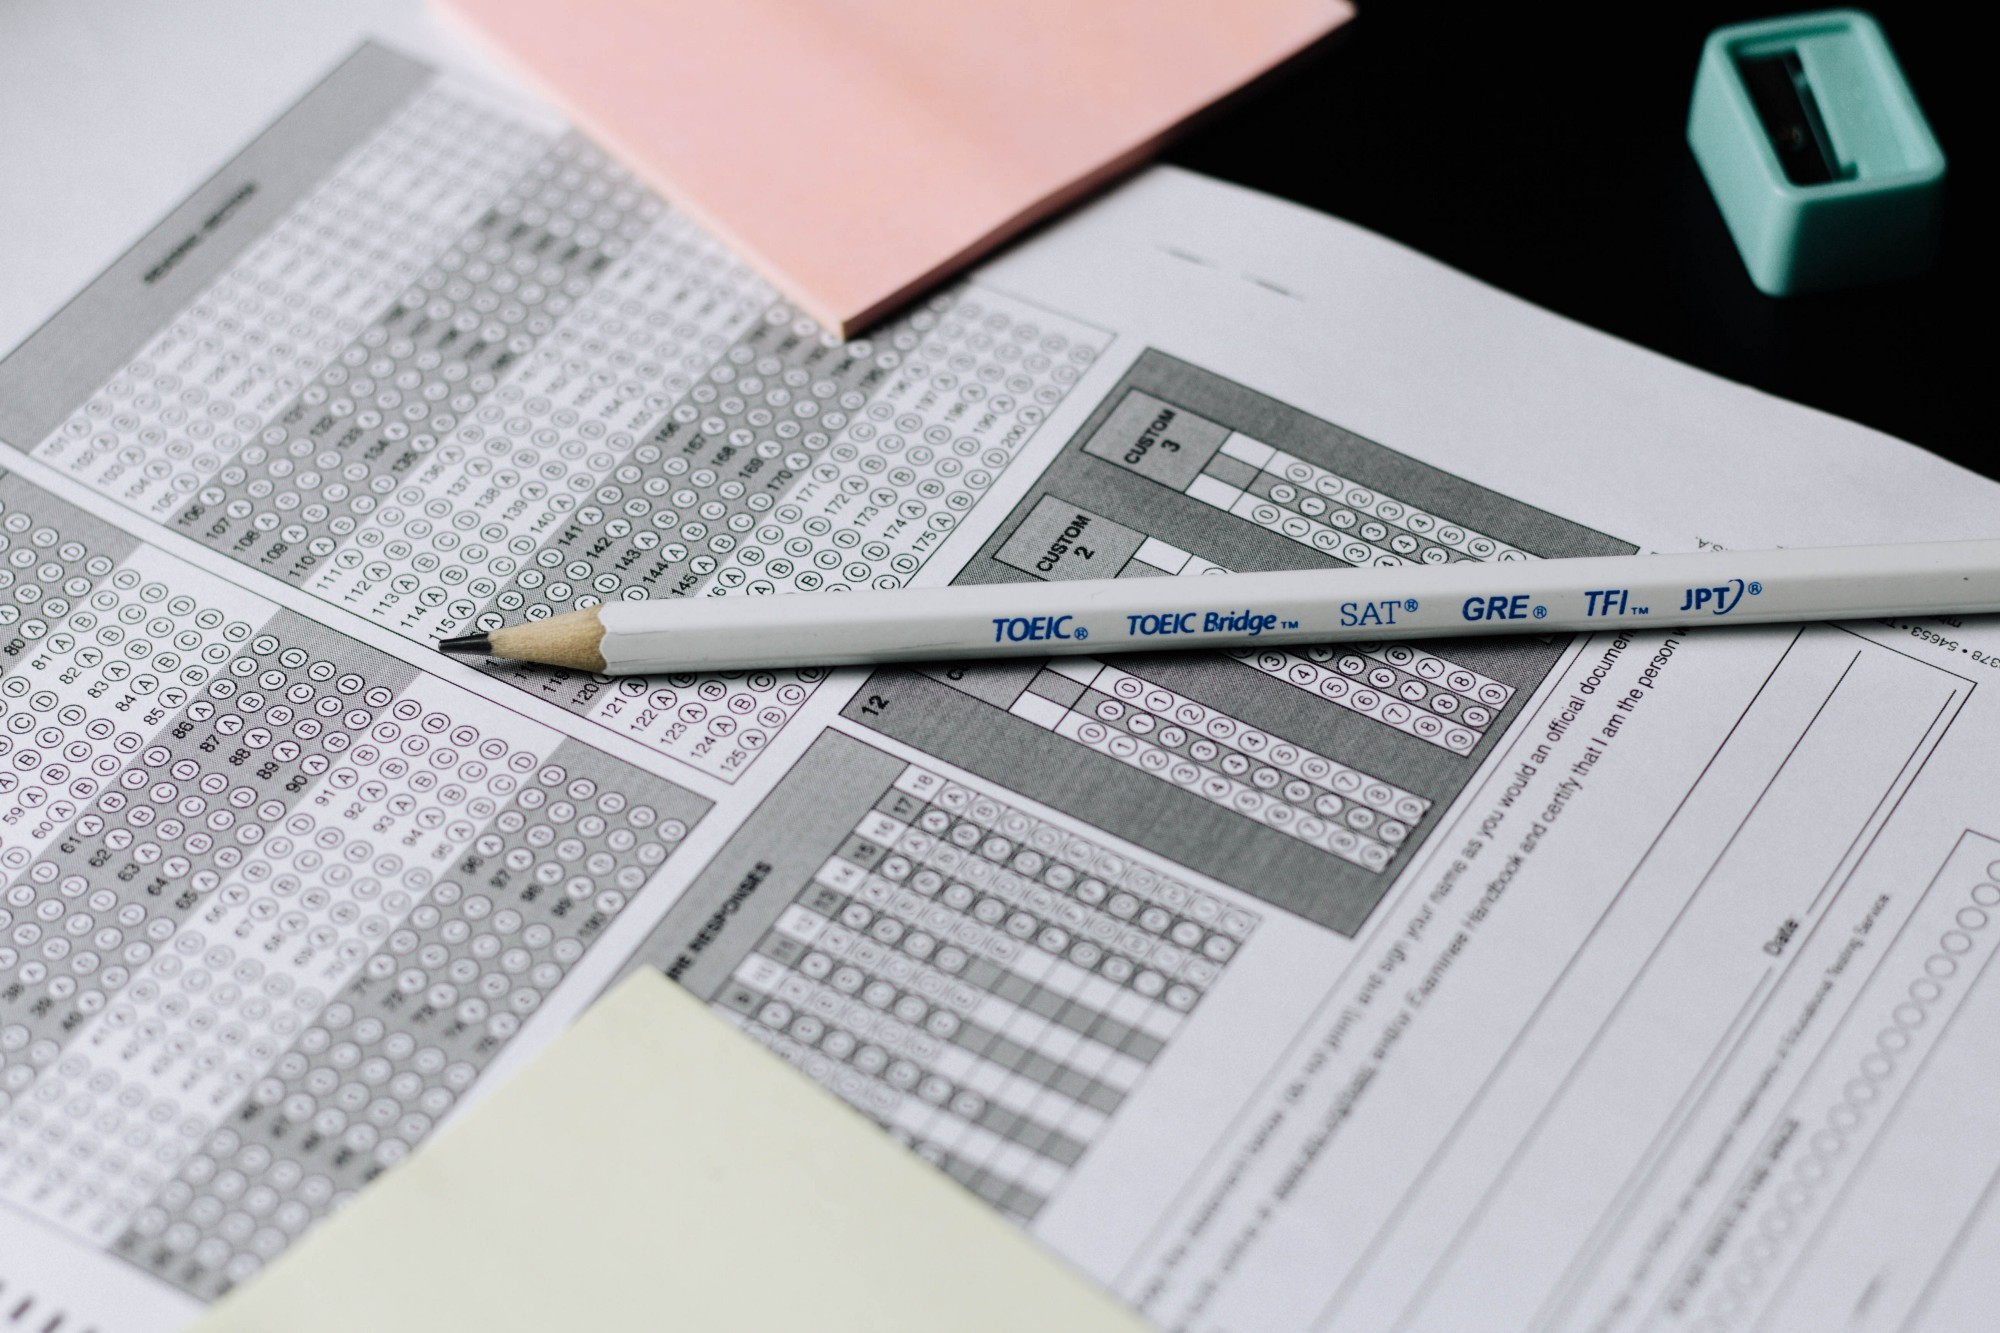 A standardized test answer sheet with a white pencil on top, post-it notepads, and a pencil sharpener nearby